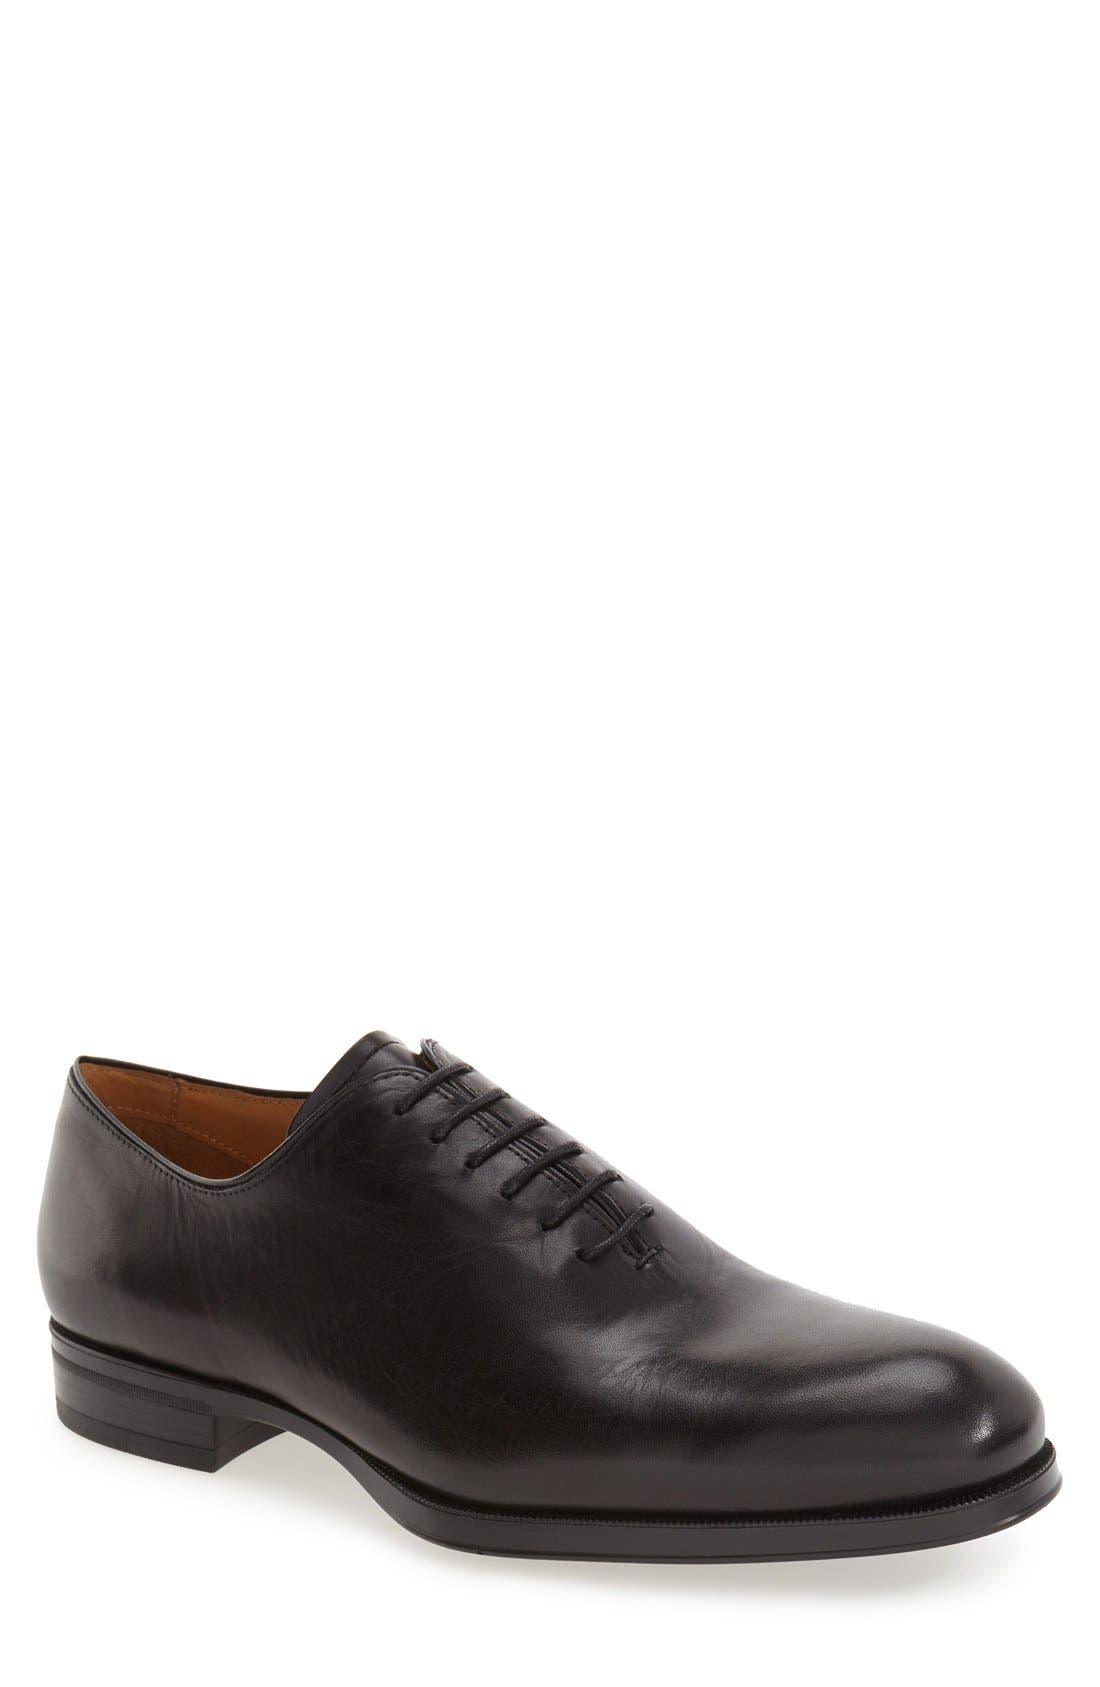 Vince Camuto 'Tarby' Wholecut Oxford (Men)